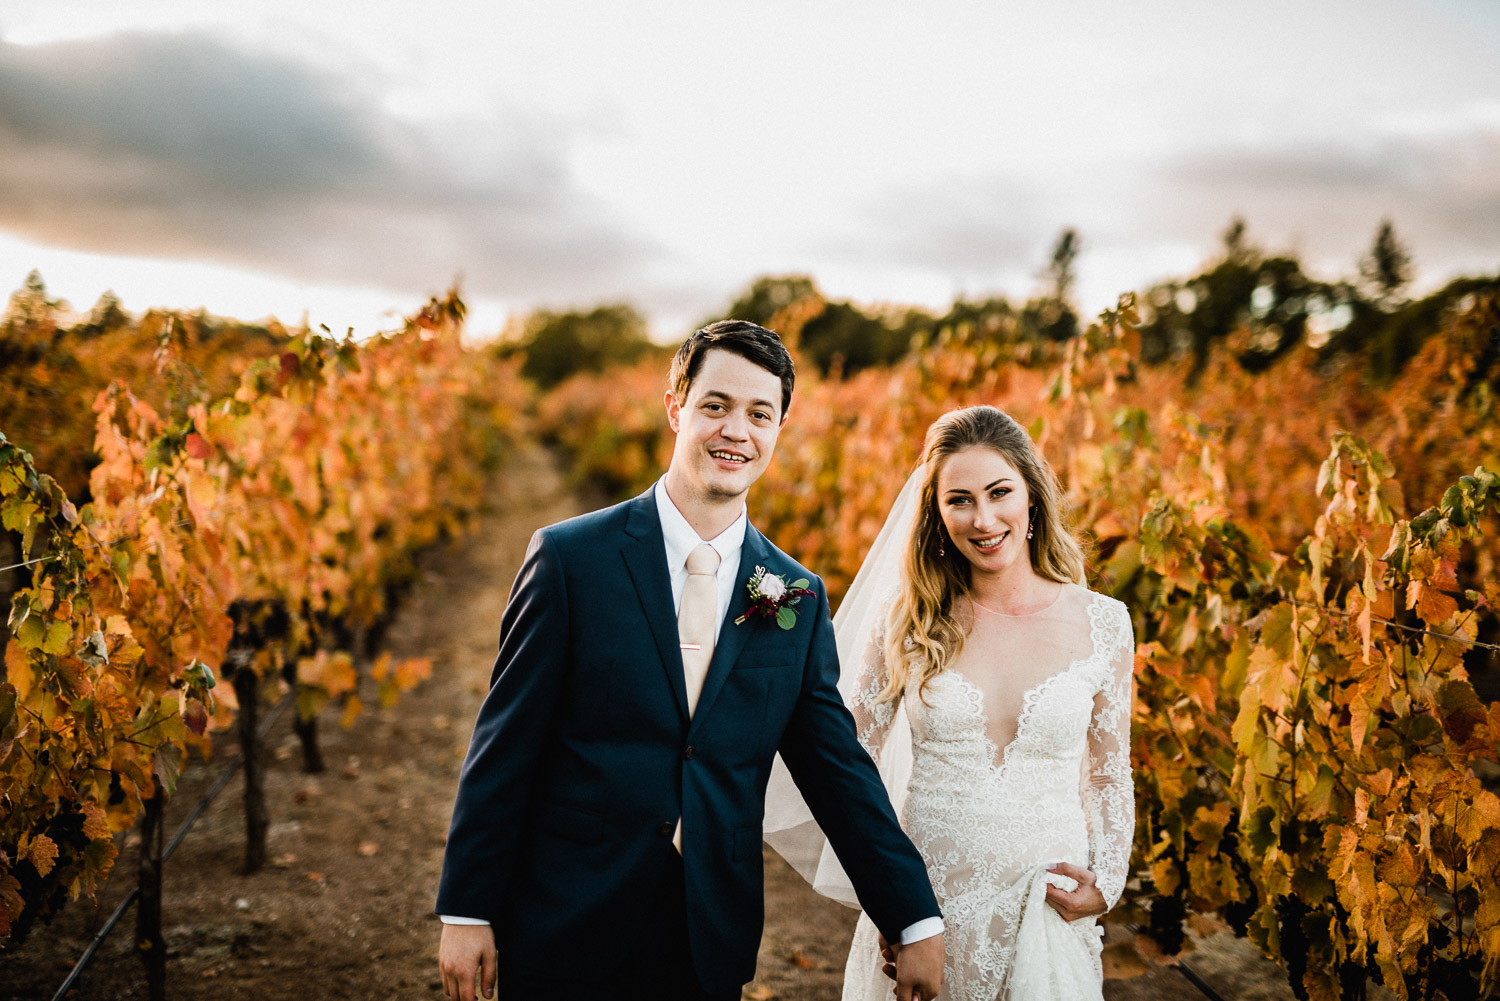 Fall Vineyard Wedding at Boatique Winery